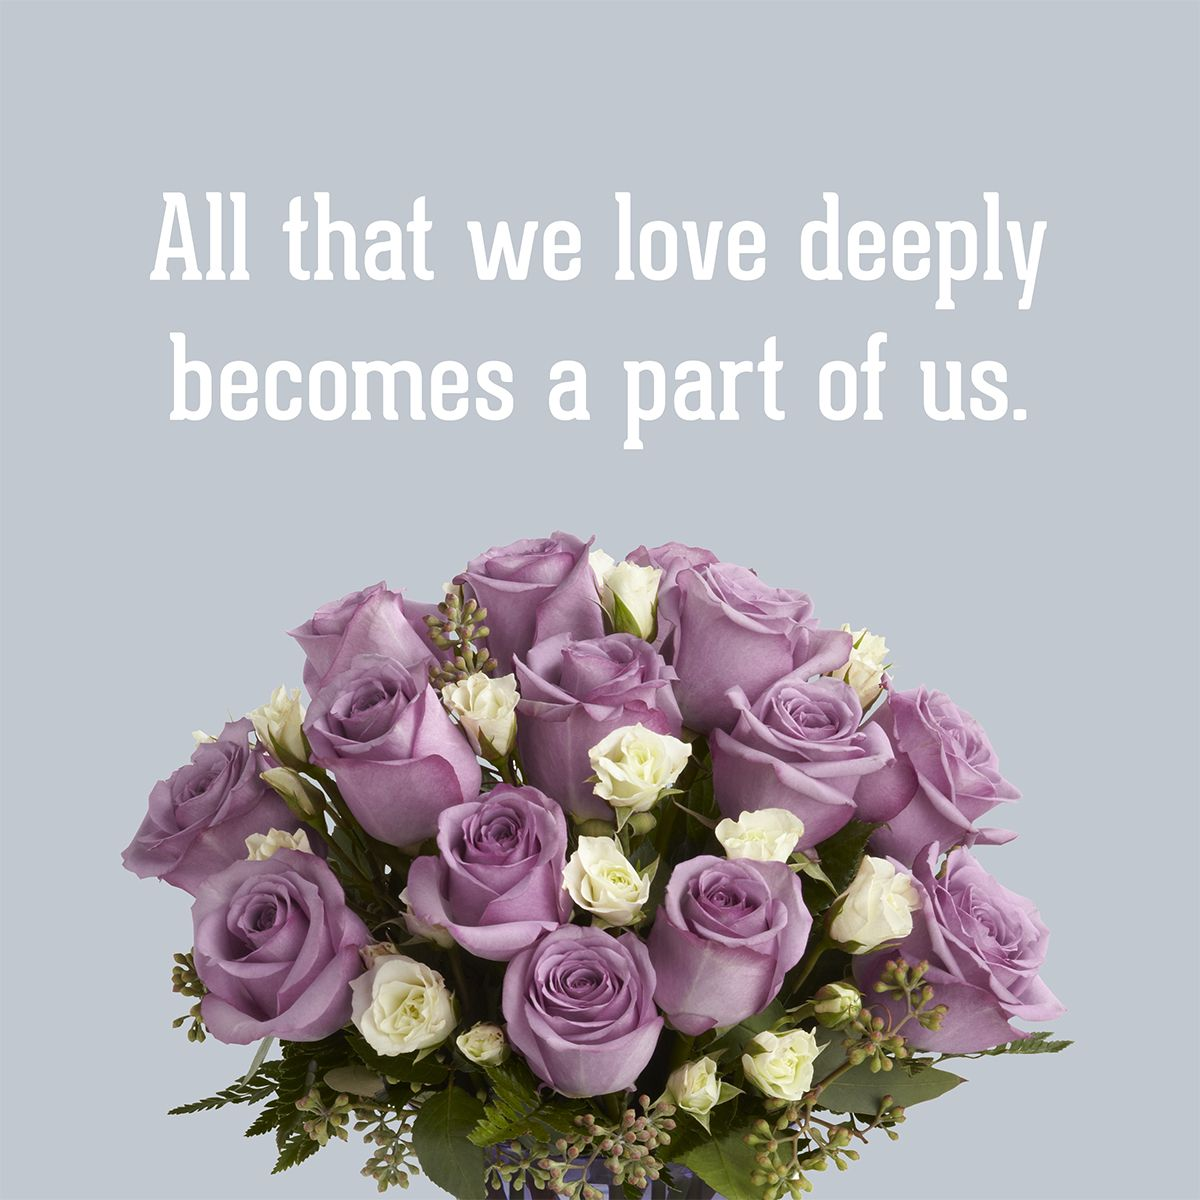 Helen Keller Quote On Love And Life So True Quotes Bouquet From Http Www Sendflowers Com Product The Purple Roses Flower Arrangements Floral Arrangements